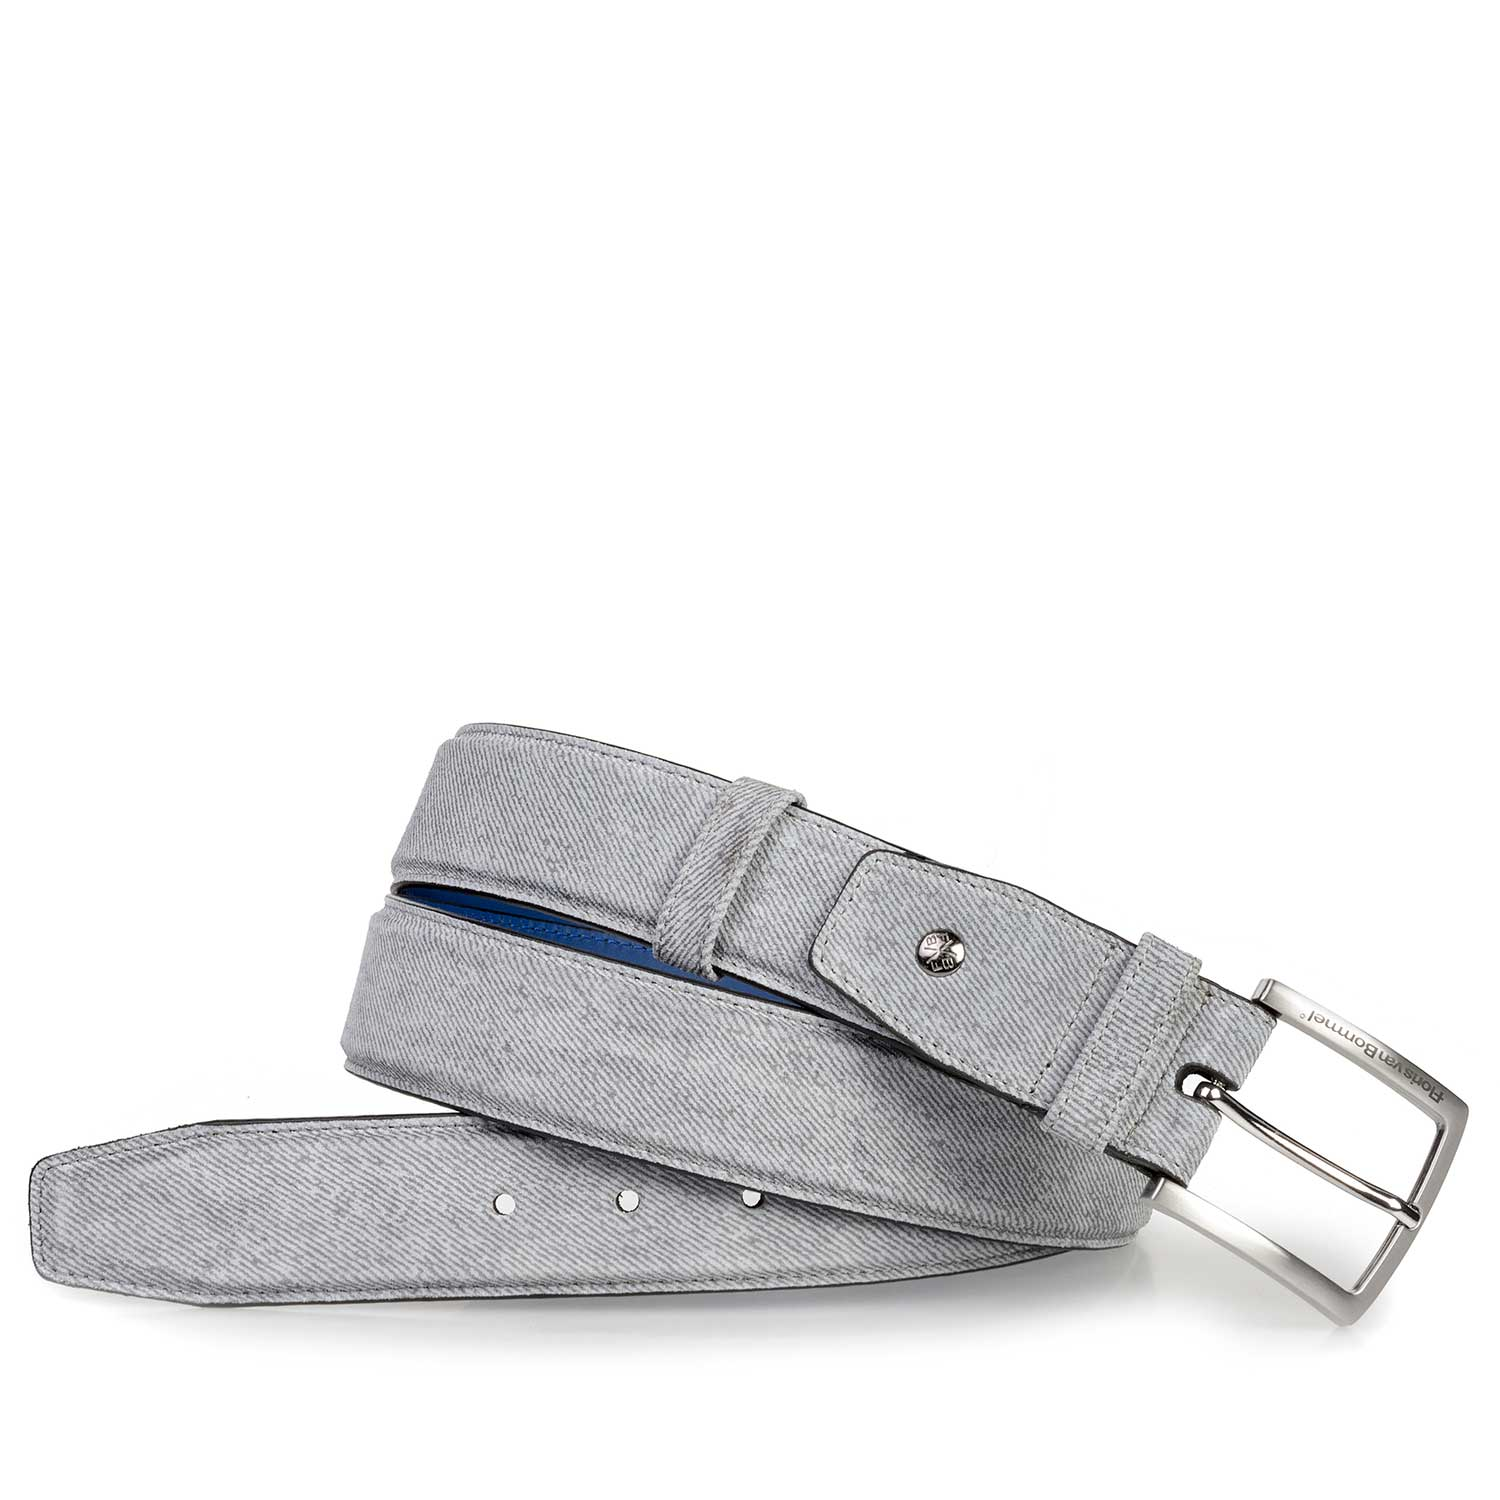 75181/10 - Light grey suede leather belt